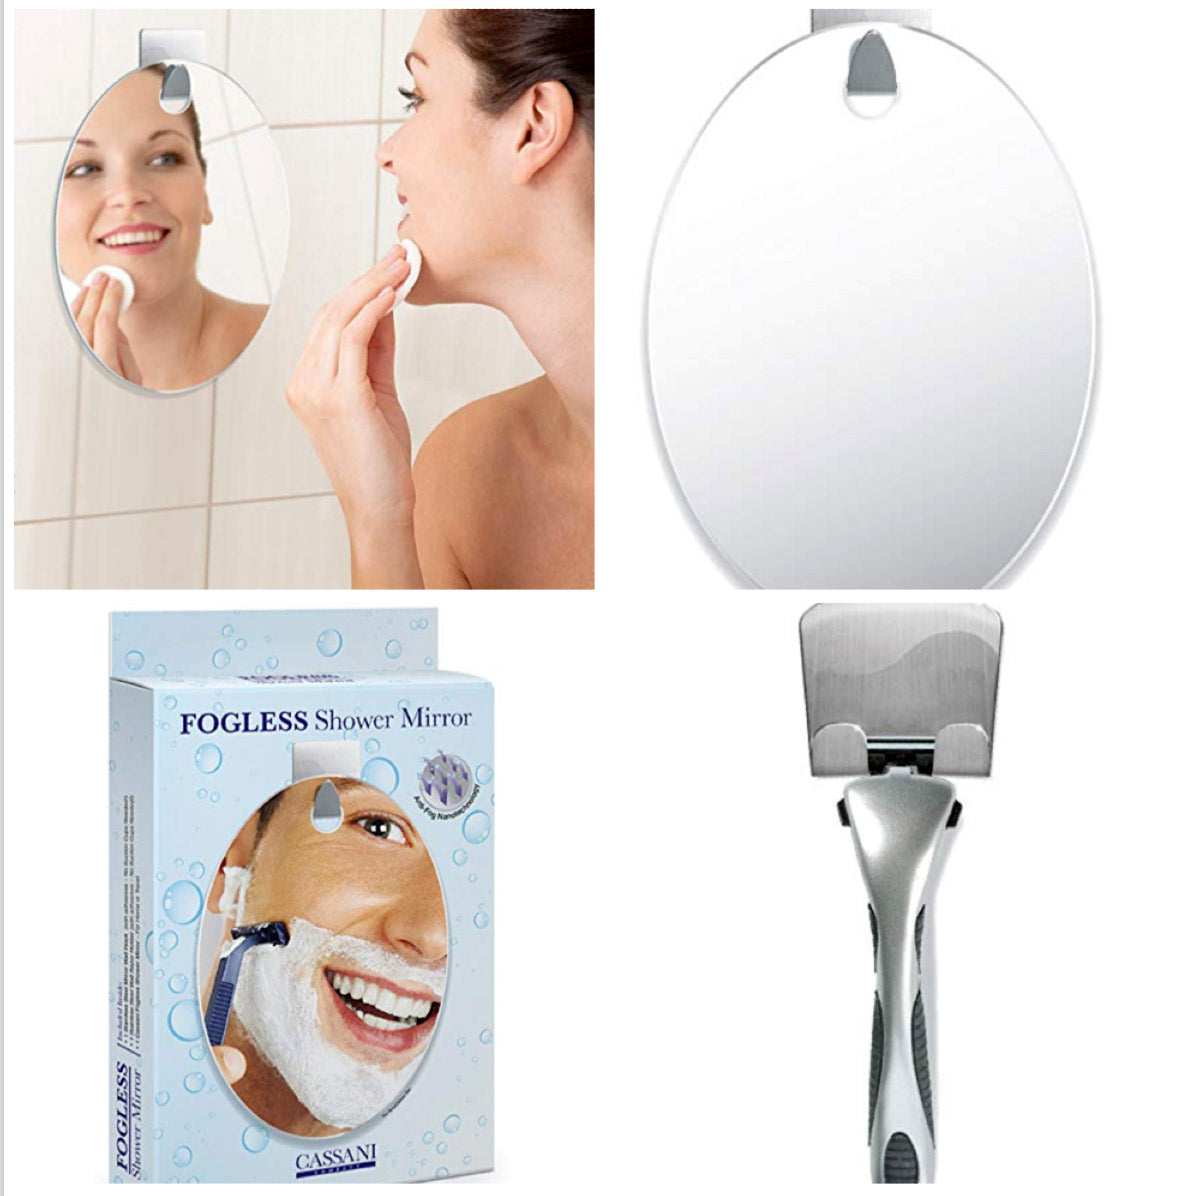 Fogless shower mirror by cassani